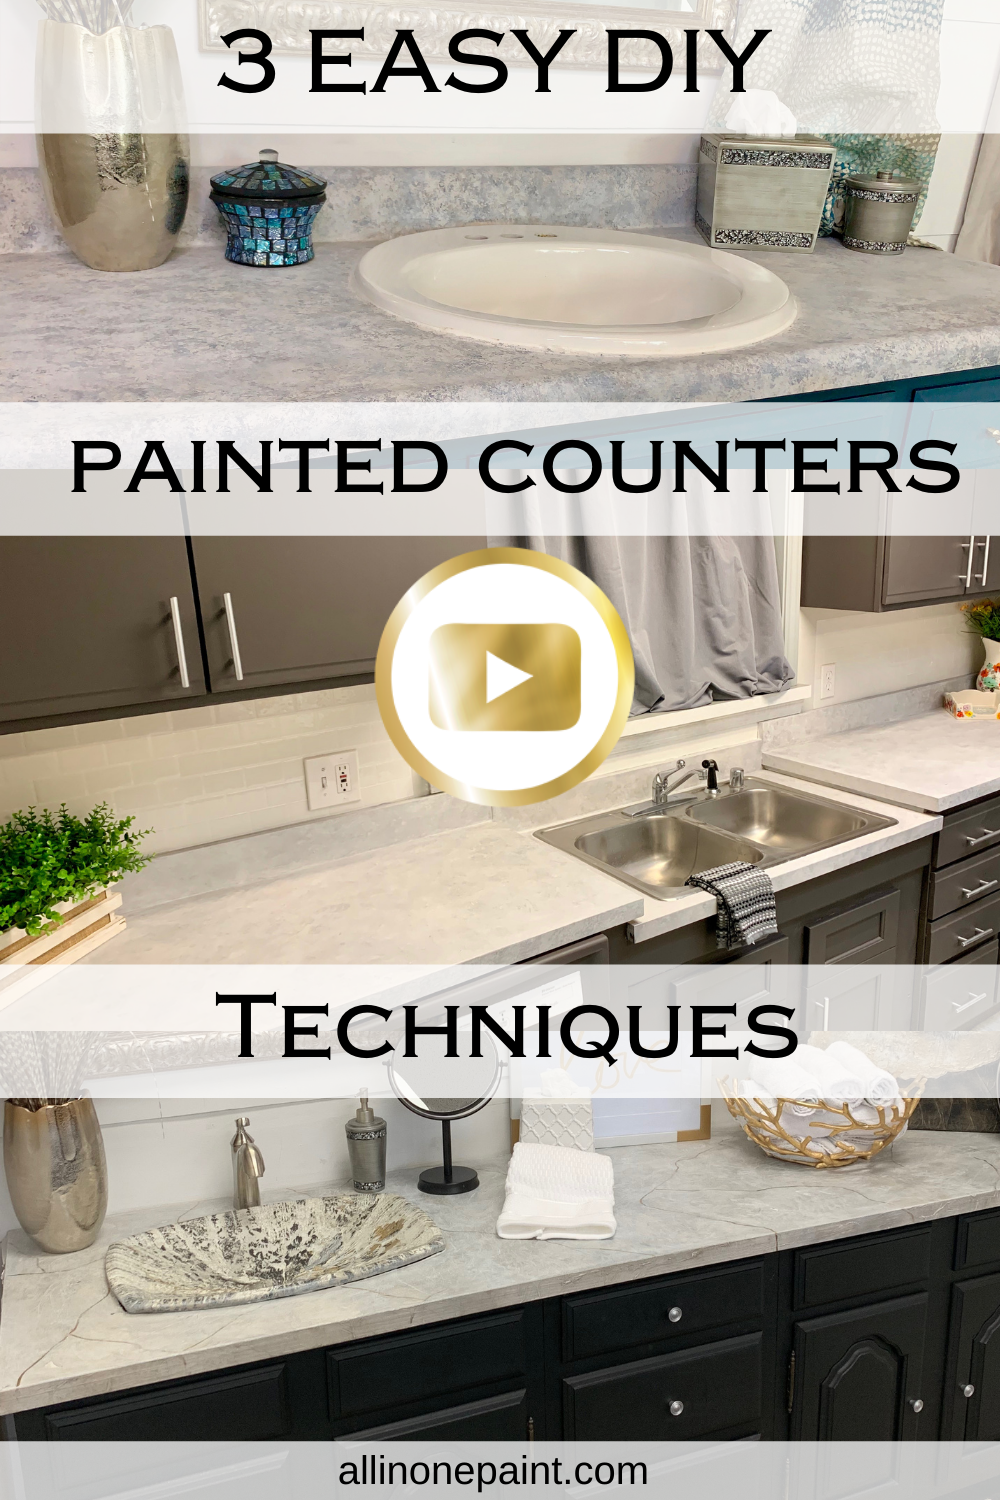 How To Paint Your Countertops Painted Counter Tops Video Tutorial All In One Paint Kitchen Cabinets And Countertops Faux Granite Countertops Kitchen Redo